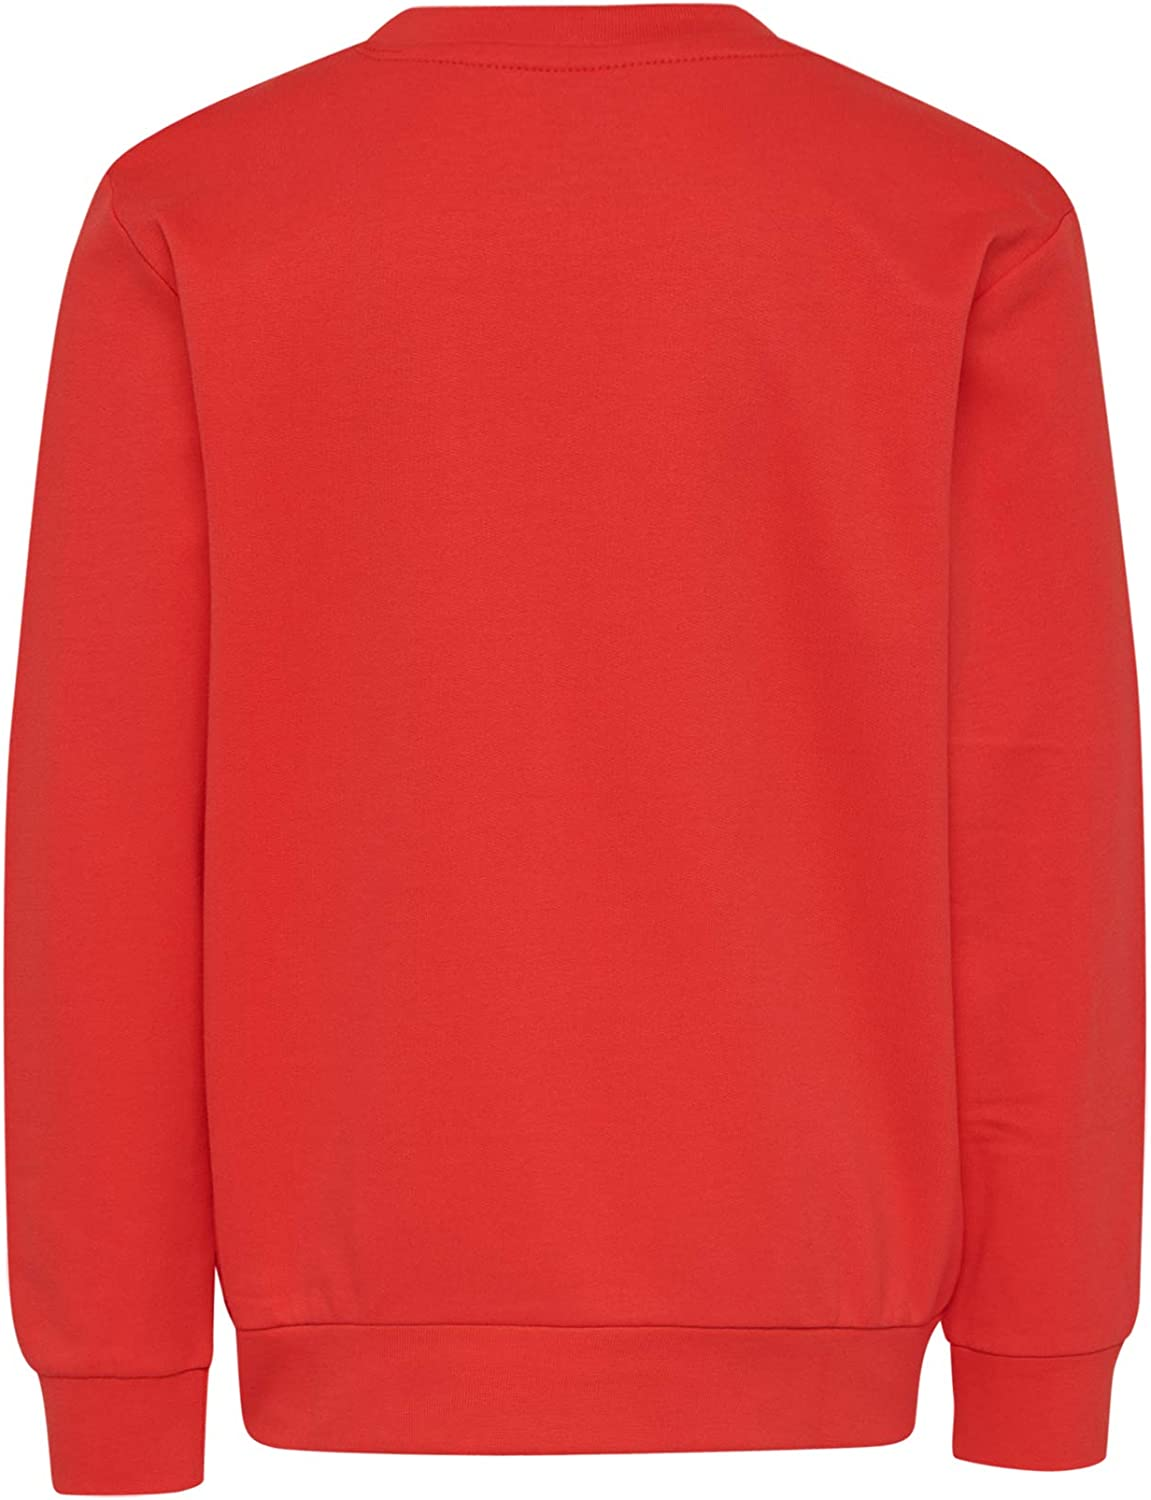 LEGO Boys cm City Long Sleeve Top